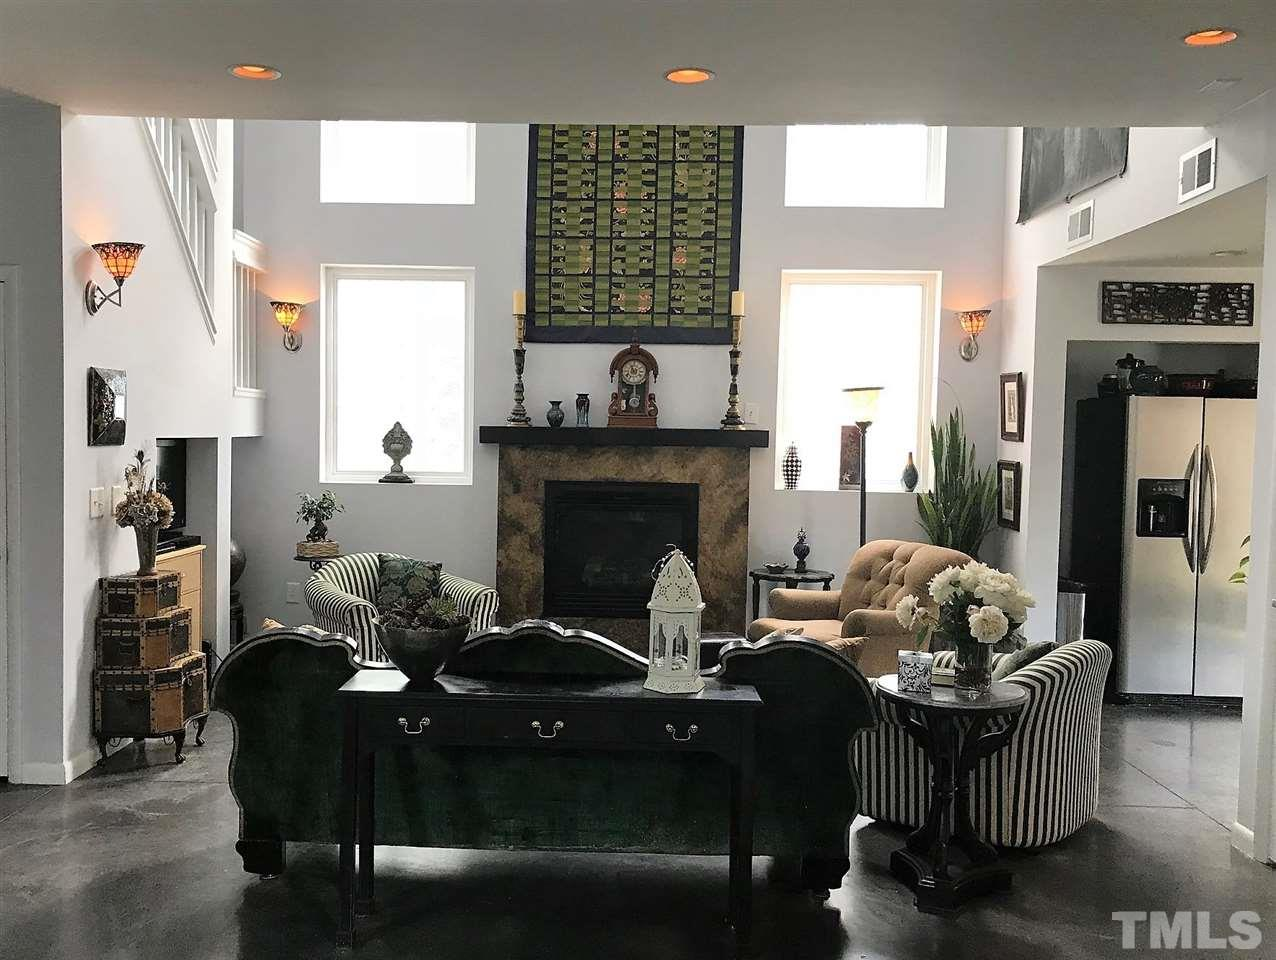 """The custom maple cabinets have pull out drawers, special spice shelves, round-abouts for easy access and interesting multi-level cap design. It also features Stainless steel appliances and dark green """"Emerald Butterfly"""" marble counters."""